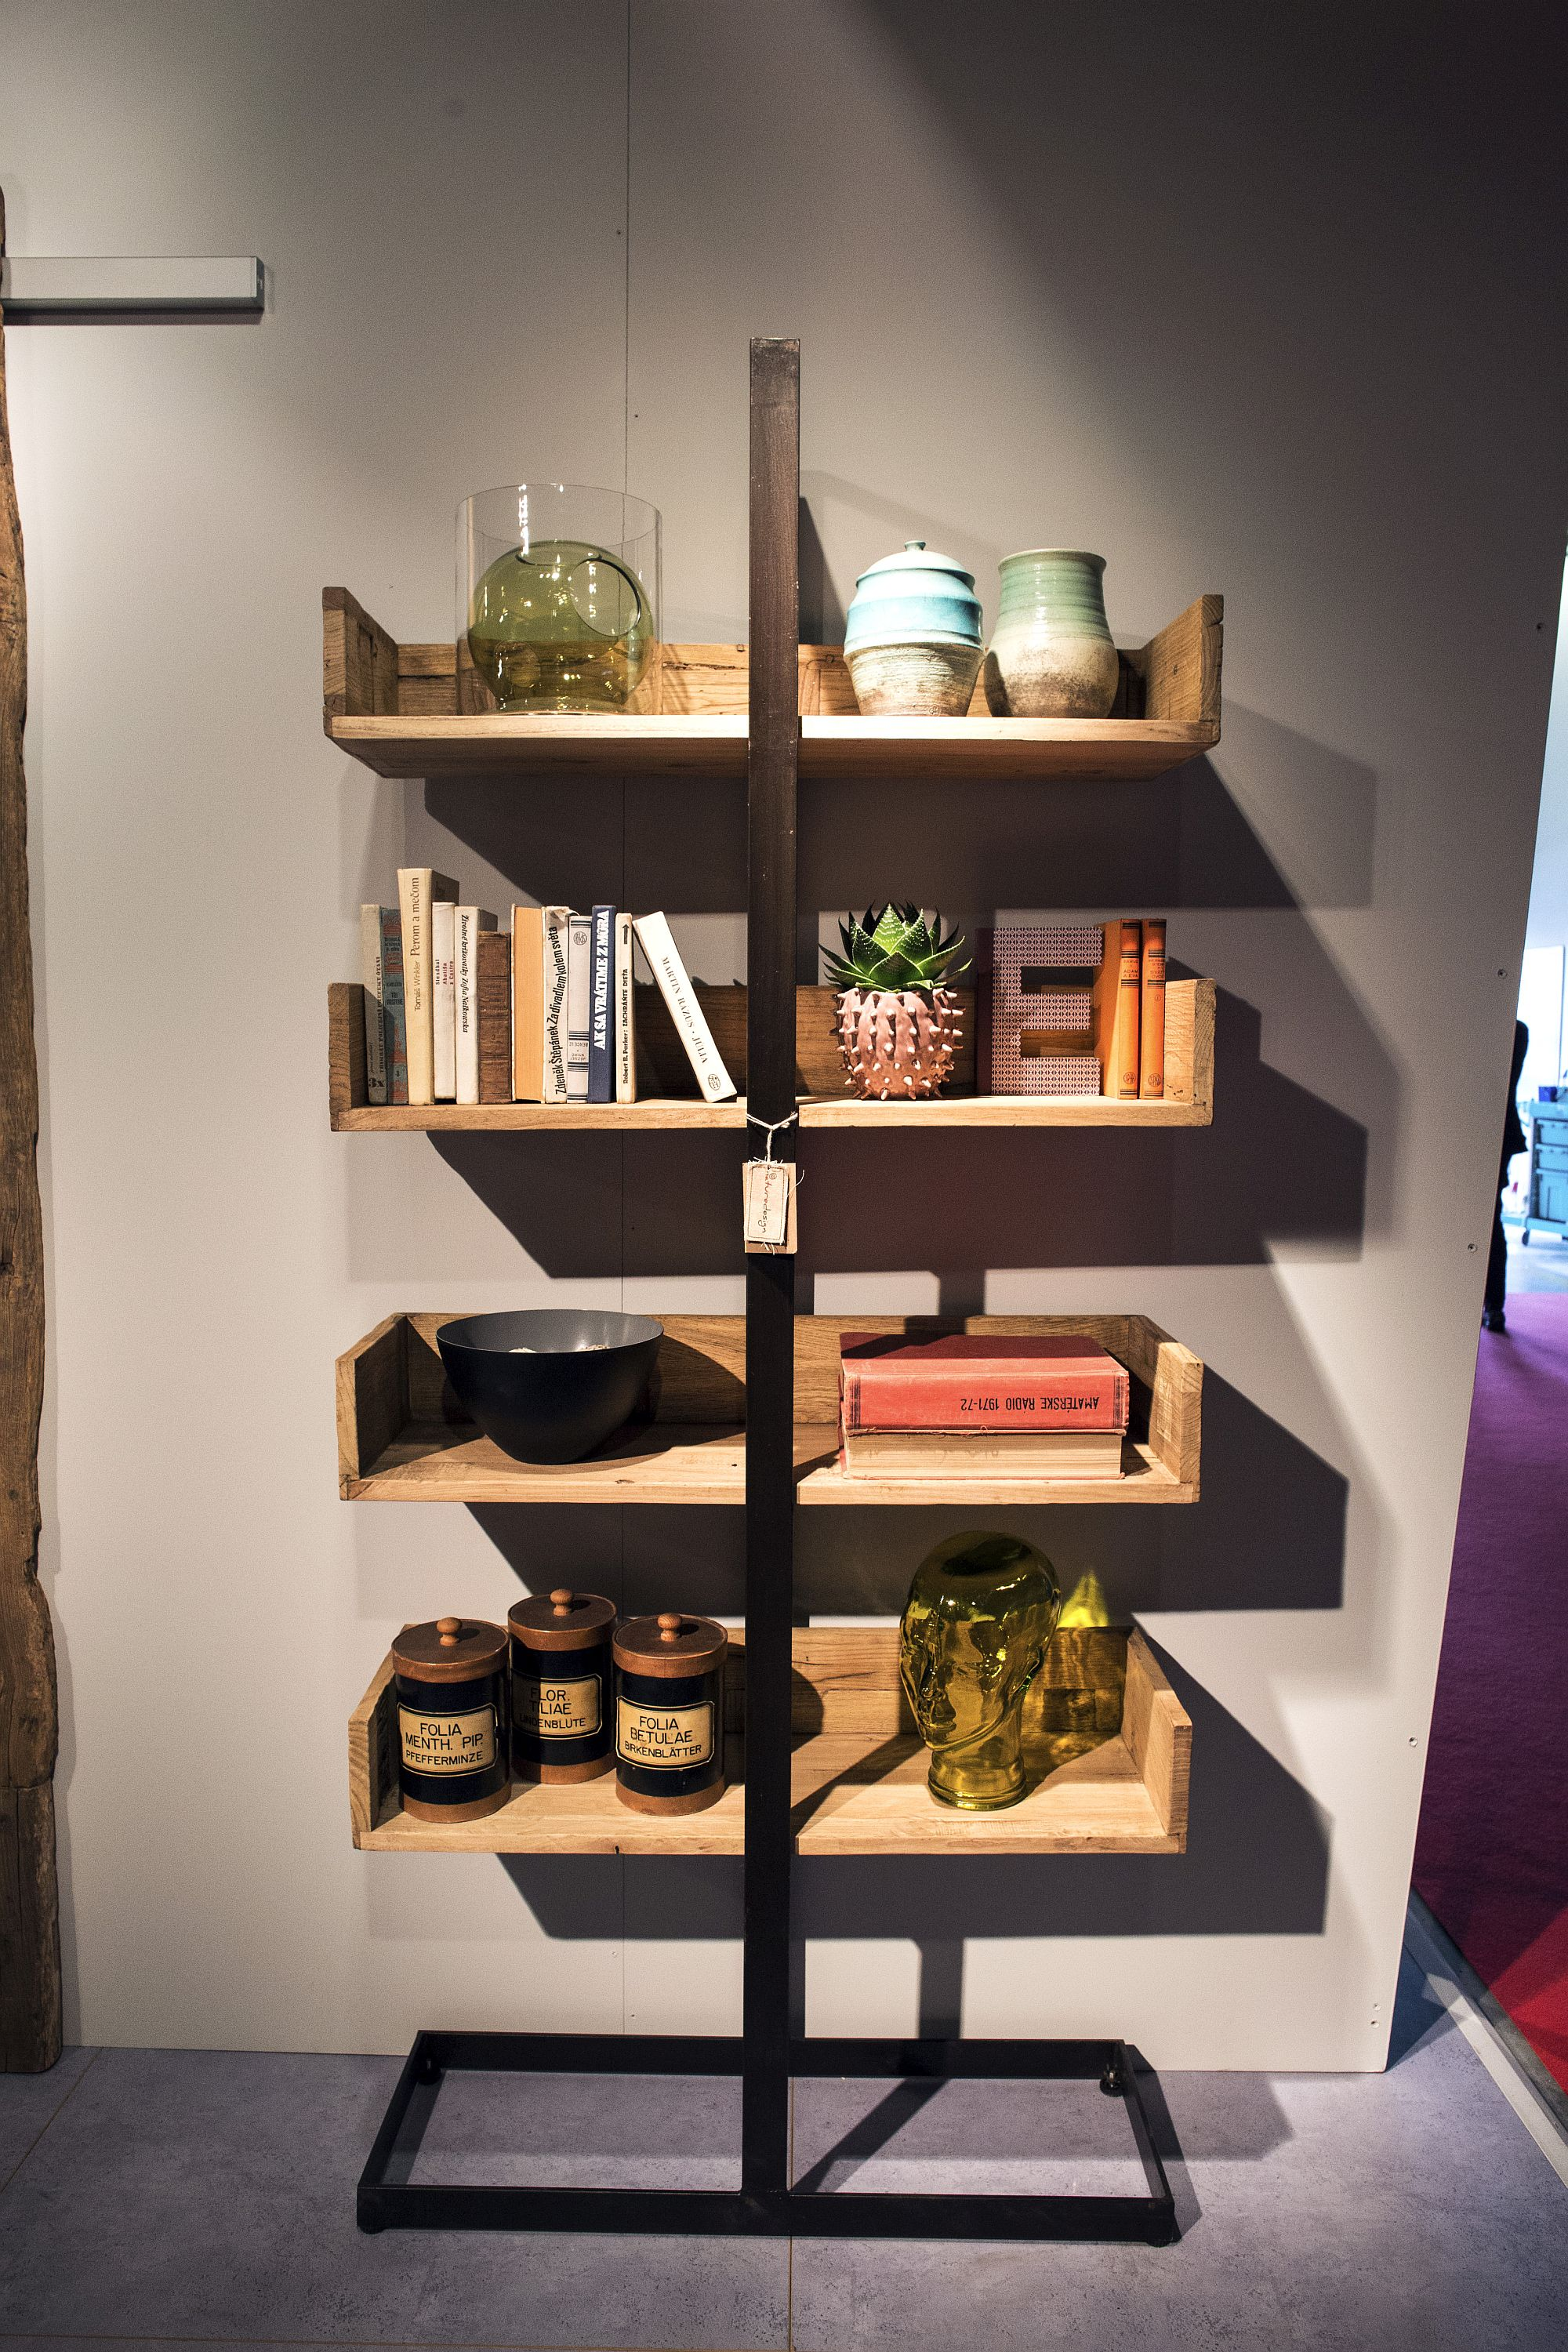 Open wooden shelves bringing modularity and decorating